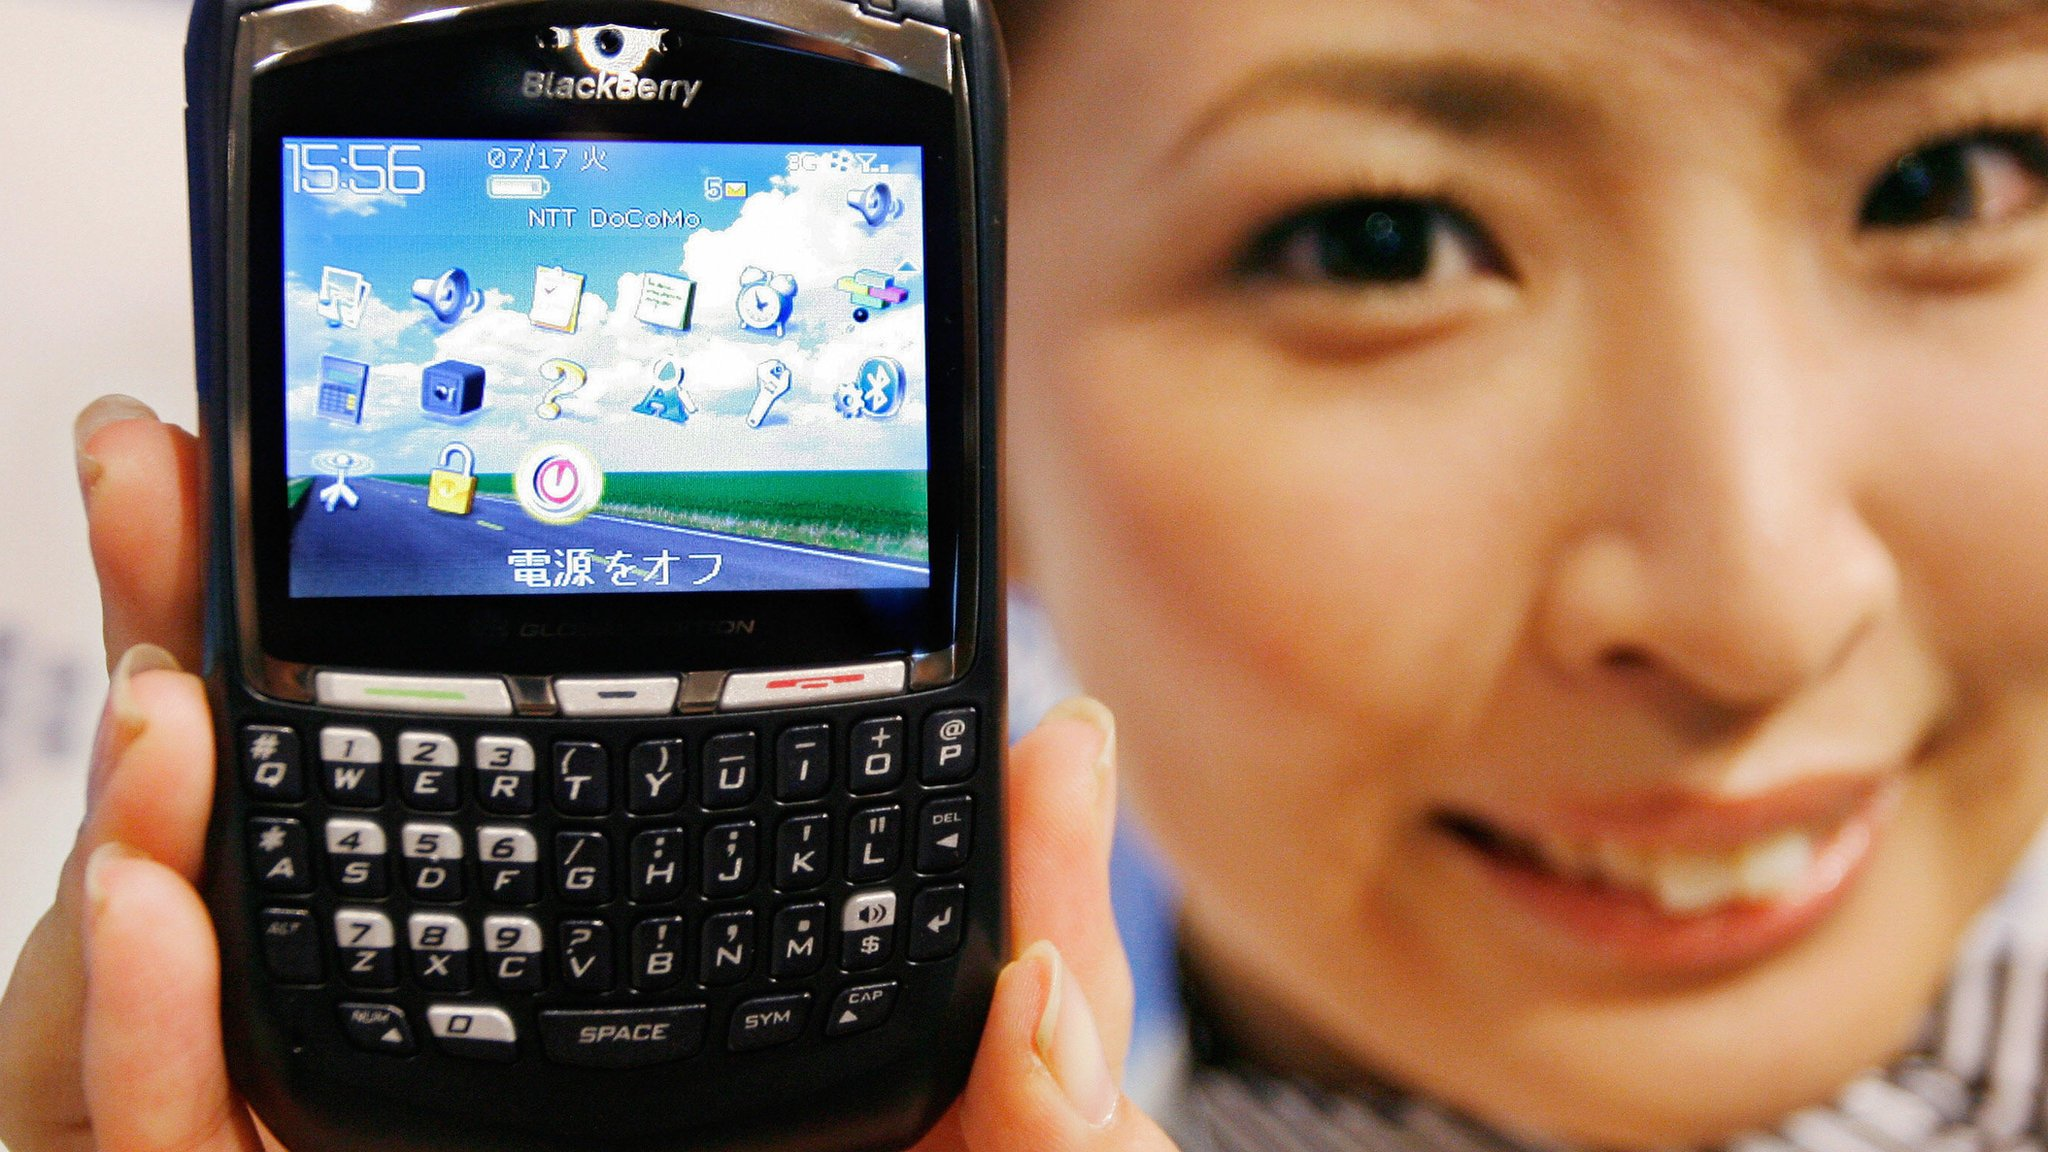 Timeline: How did Blackberry get here?